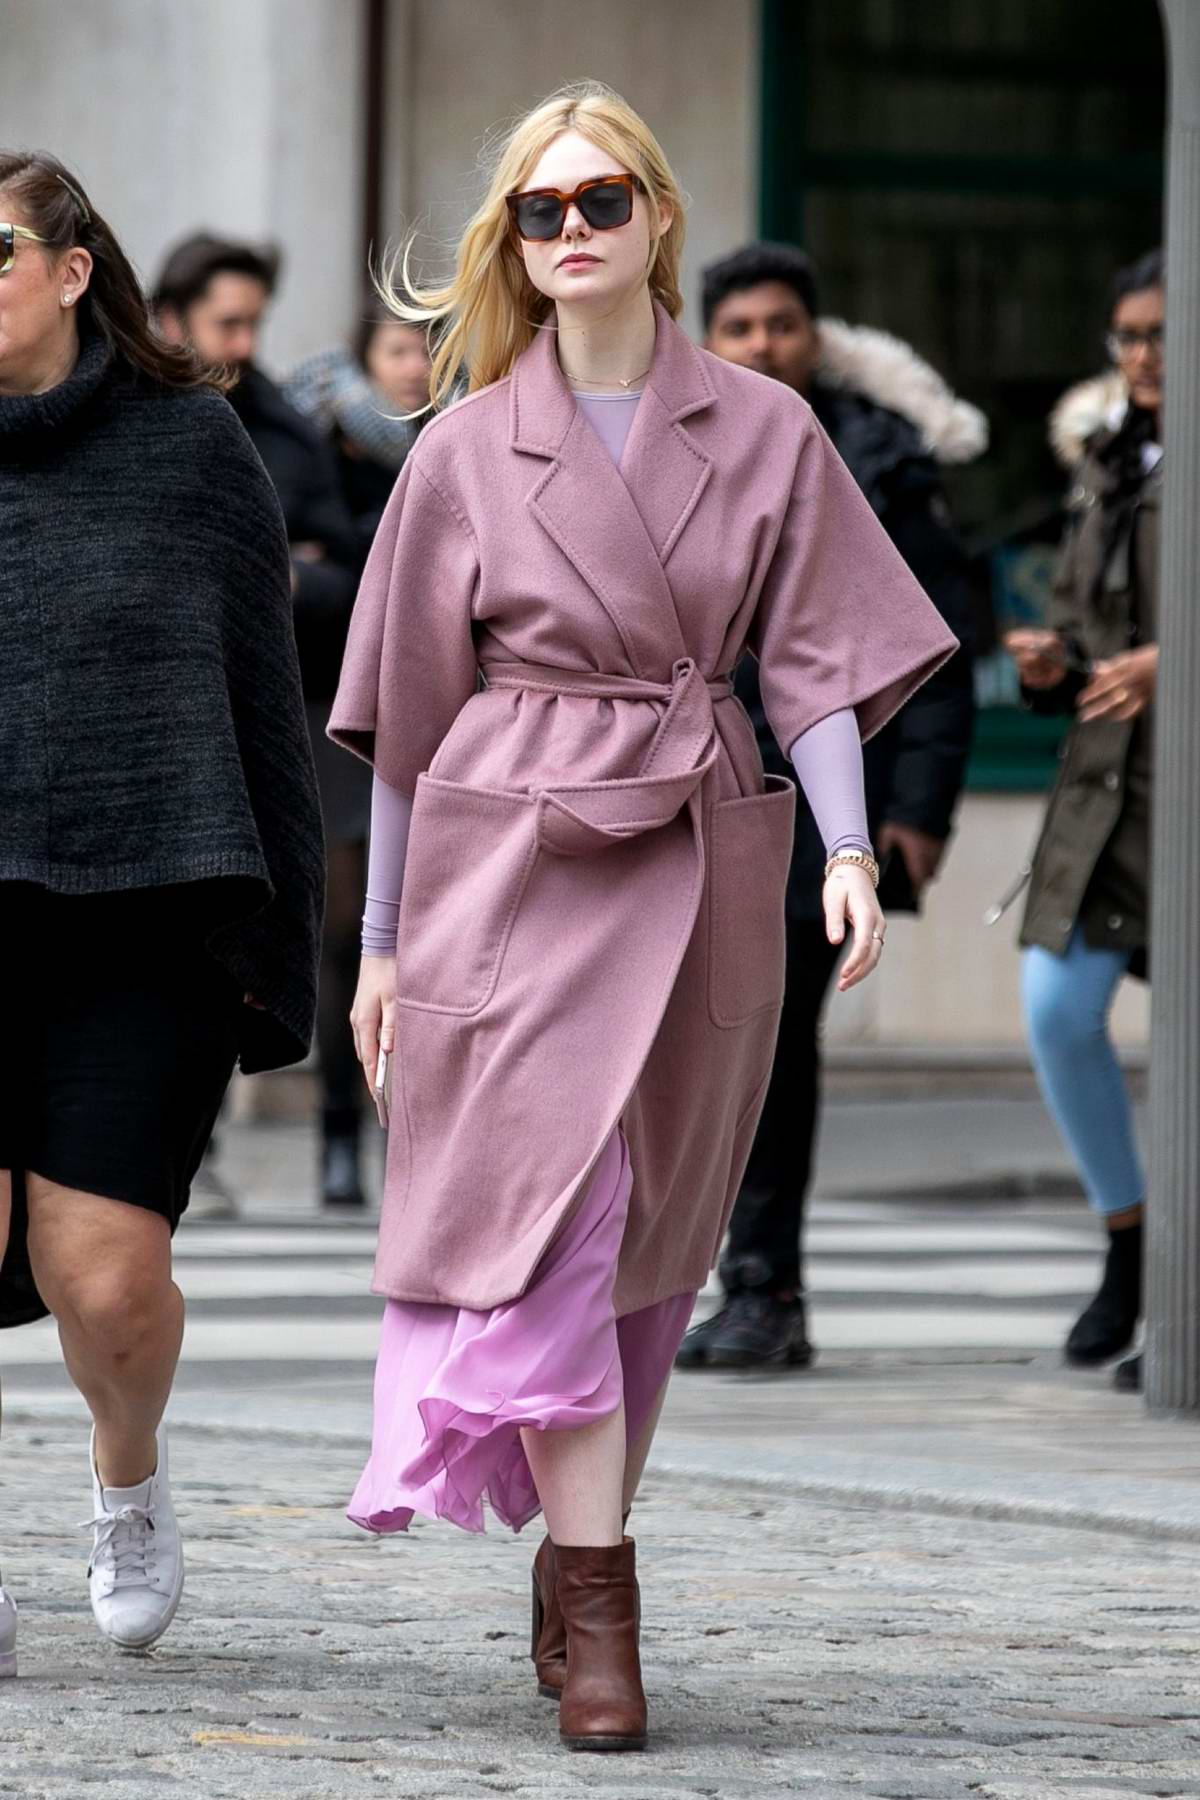 Elle Fanning looks stylish in a mauve coat with pink dress as she steps out during Paris Fashion Week F/W 2019 in Paris, France